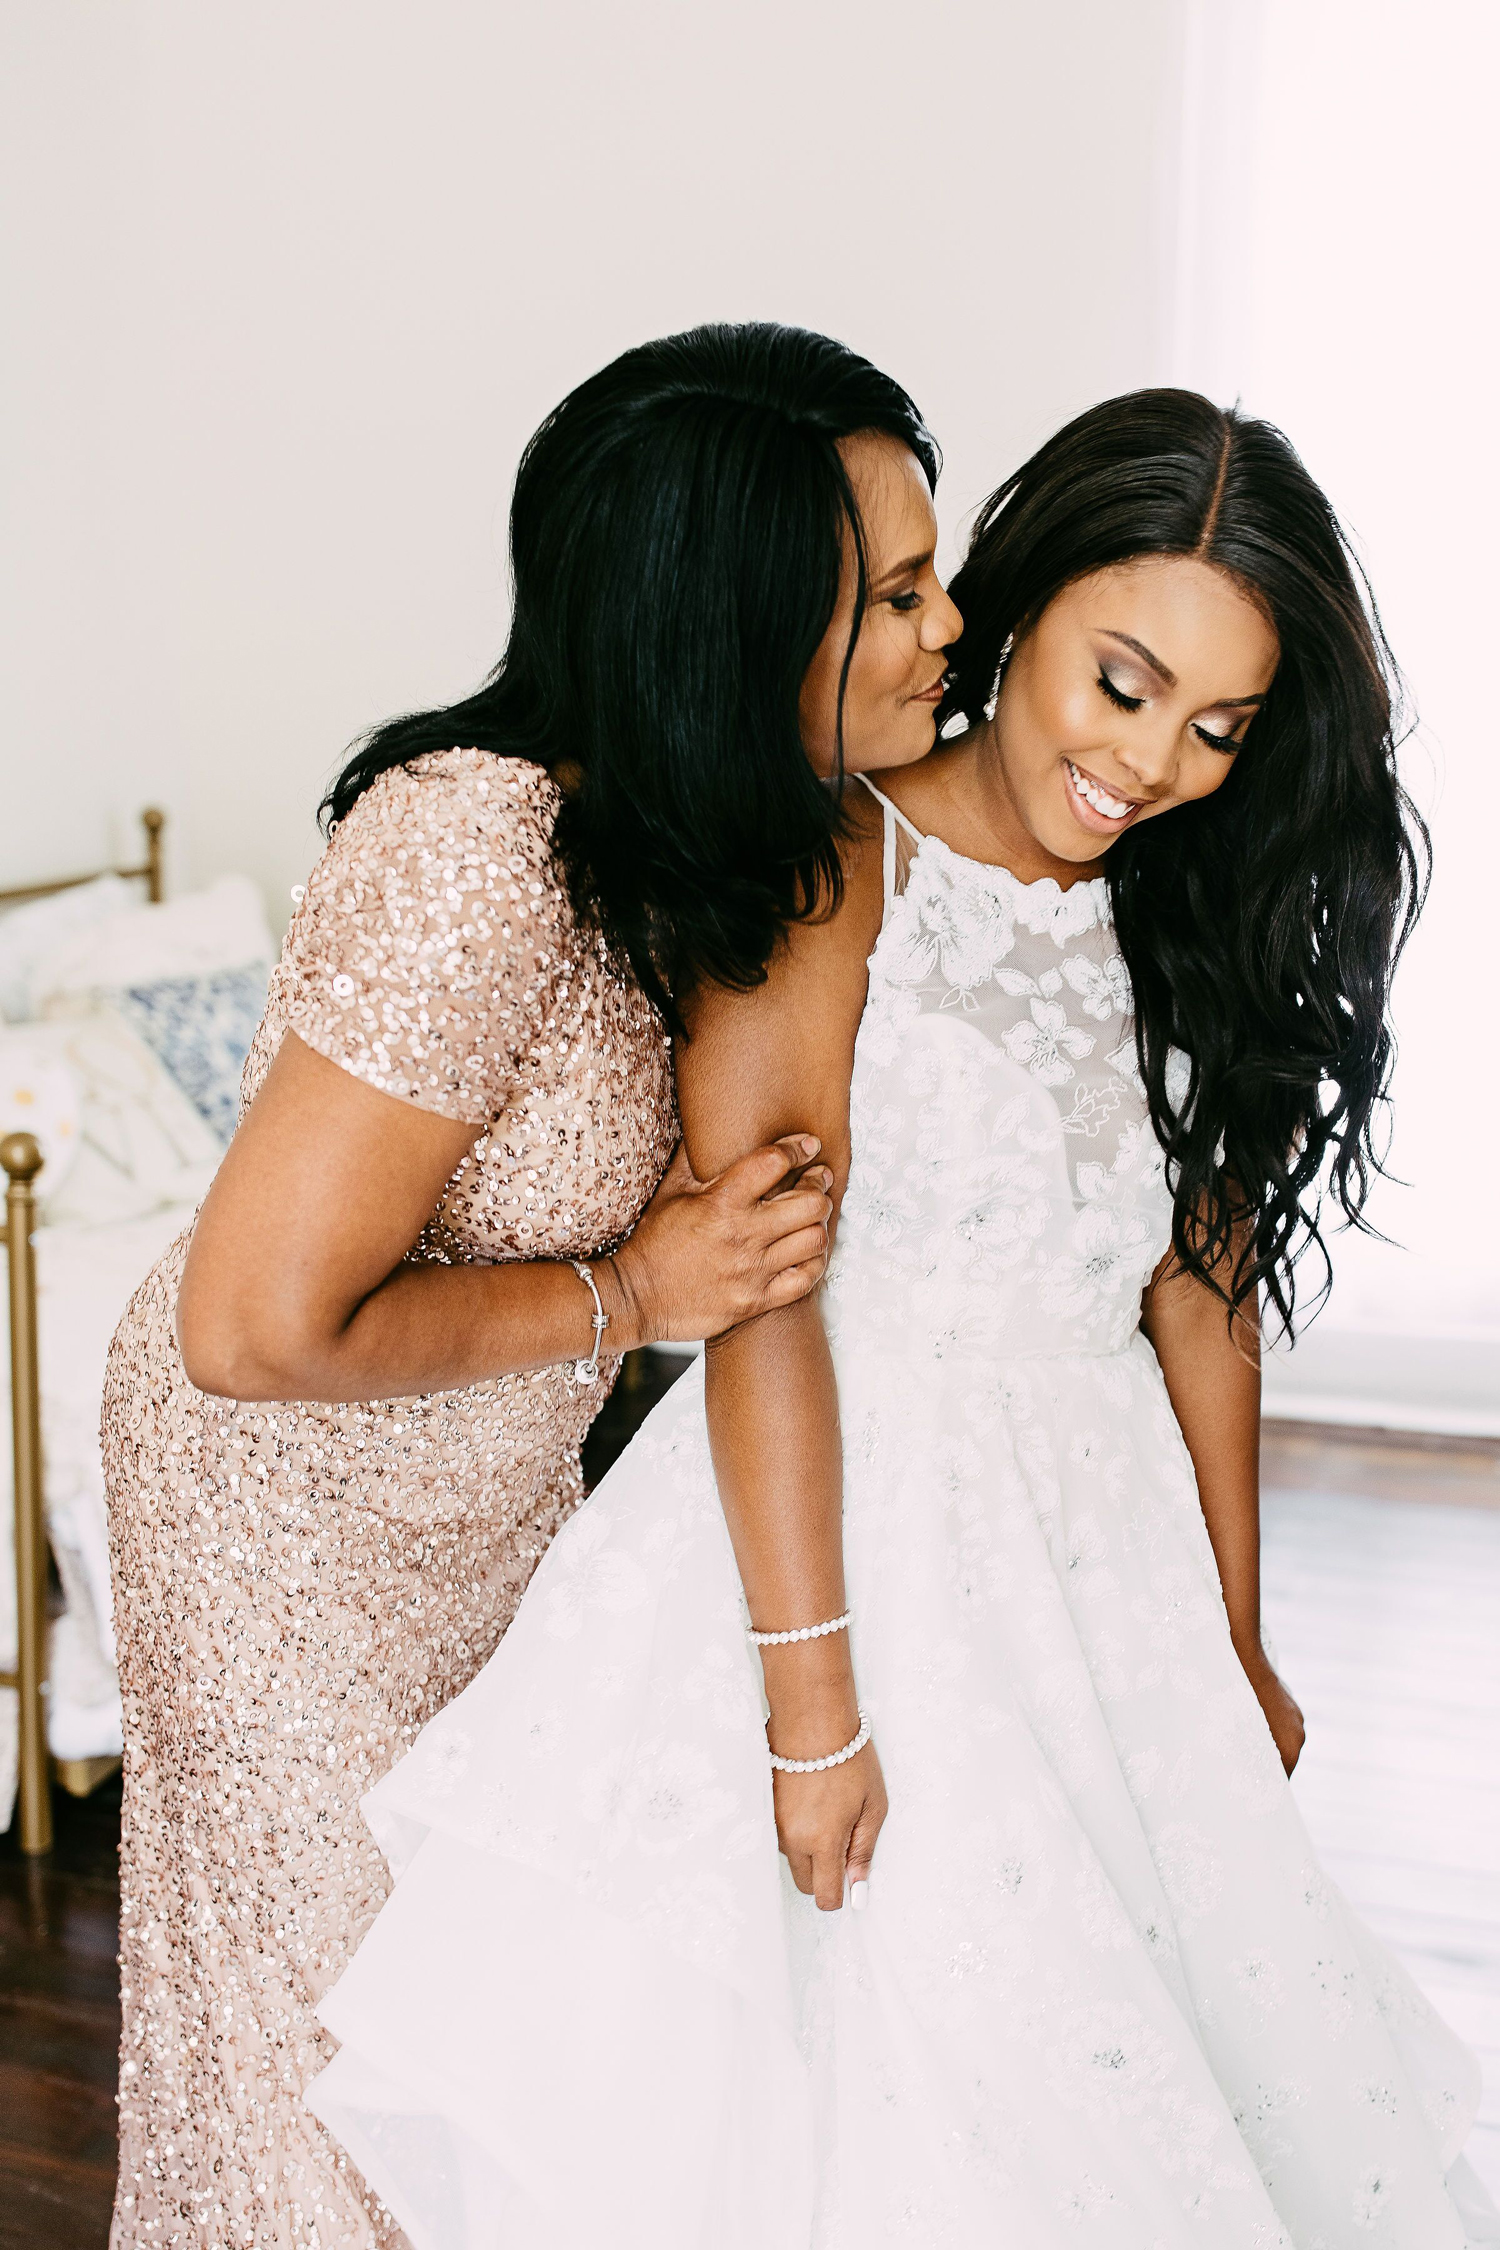 mother of the bride and bride embracing